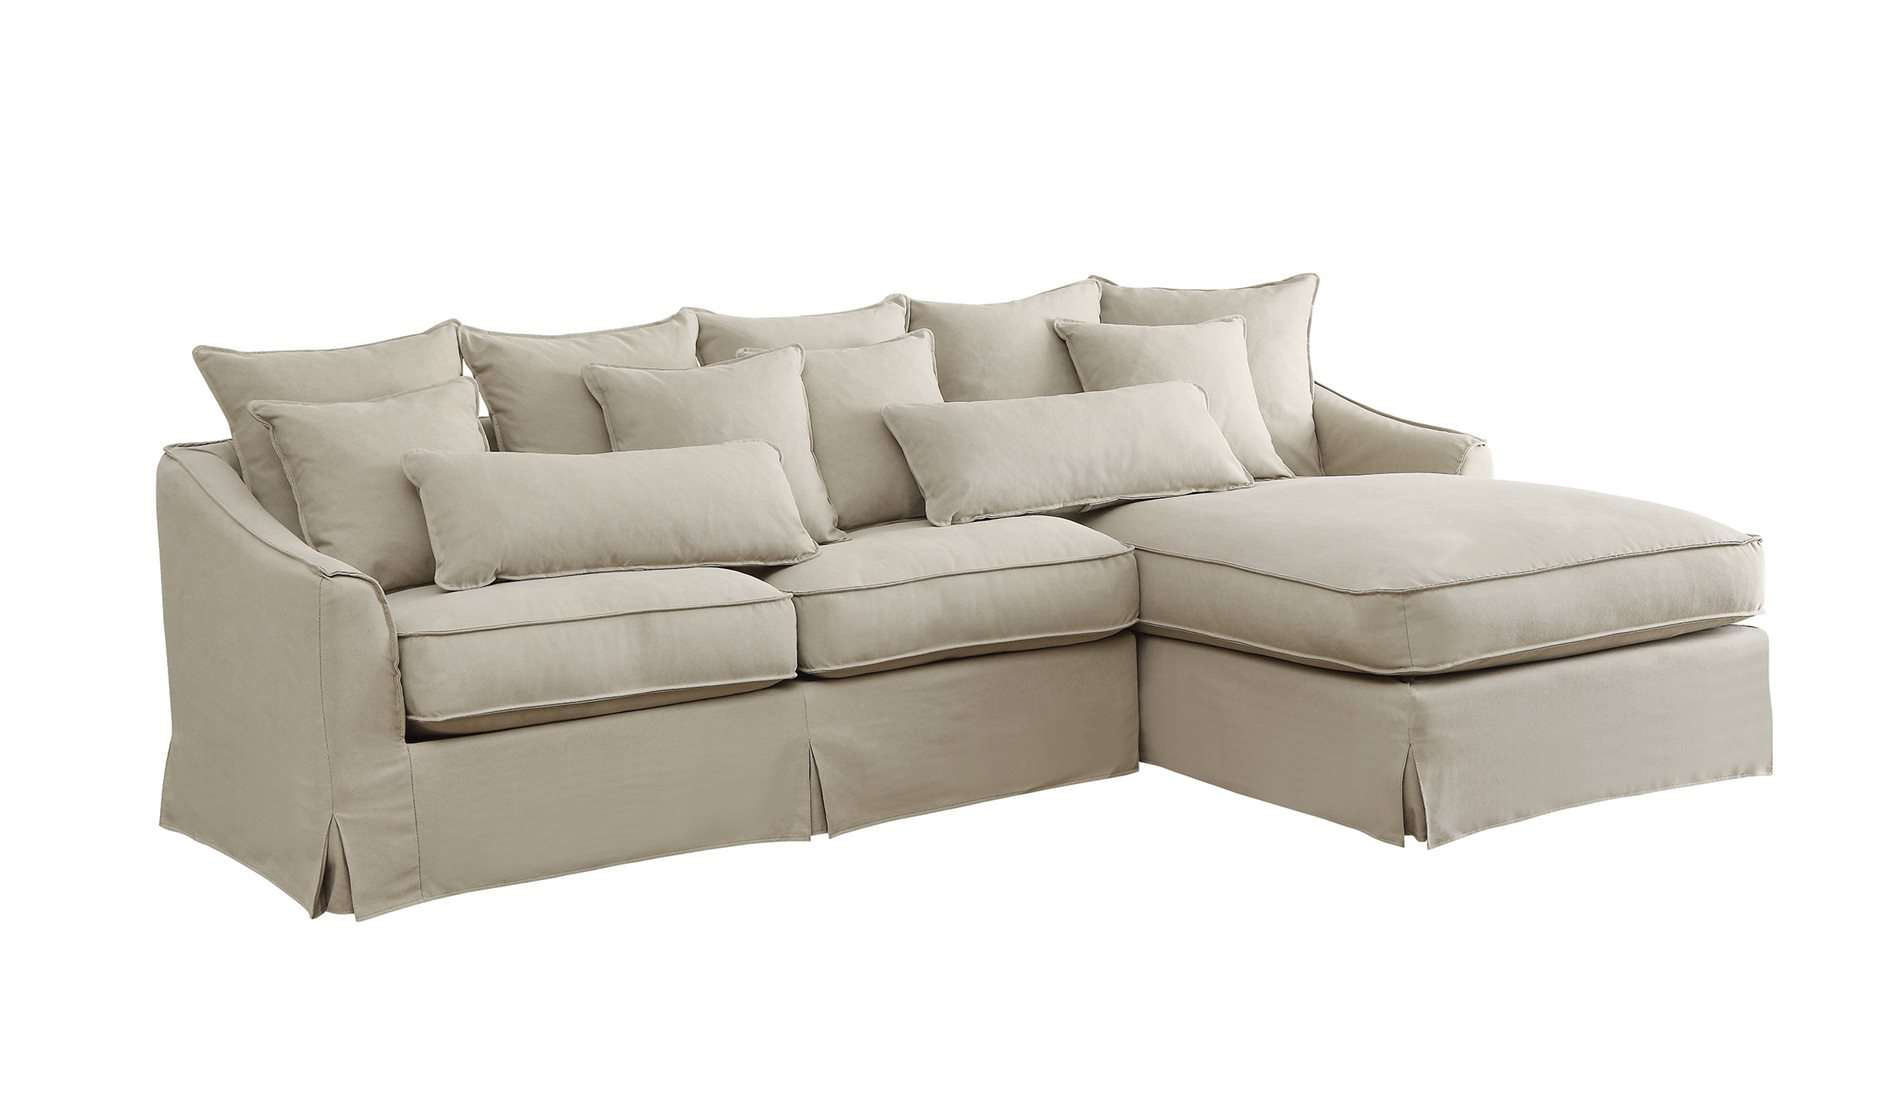 Coaster home 500180 knottley slipcovered sectional sofa for Nottley slipcovered sectional sofa with chaise and feather blend cushions